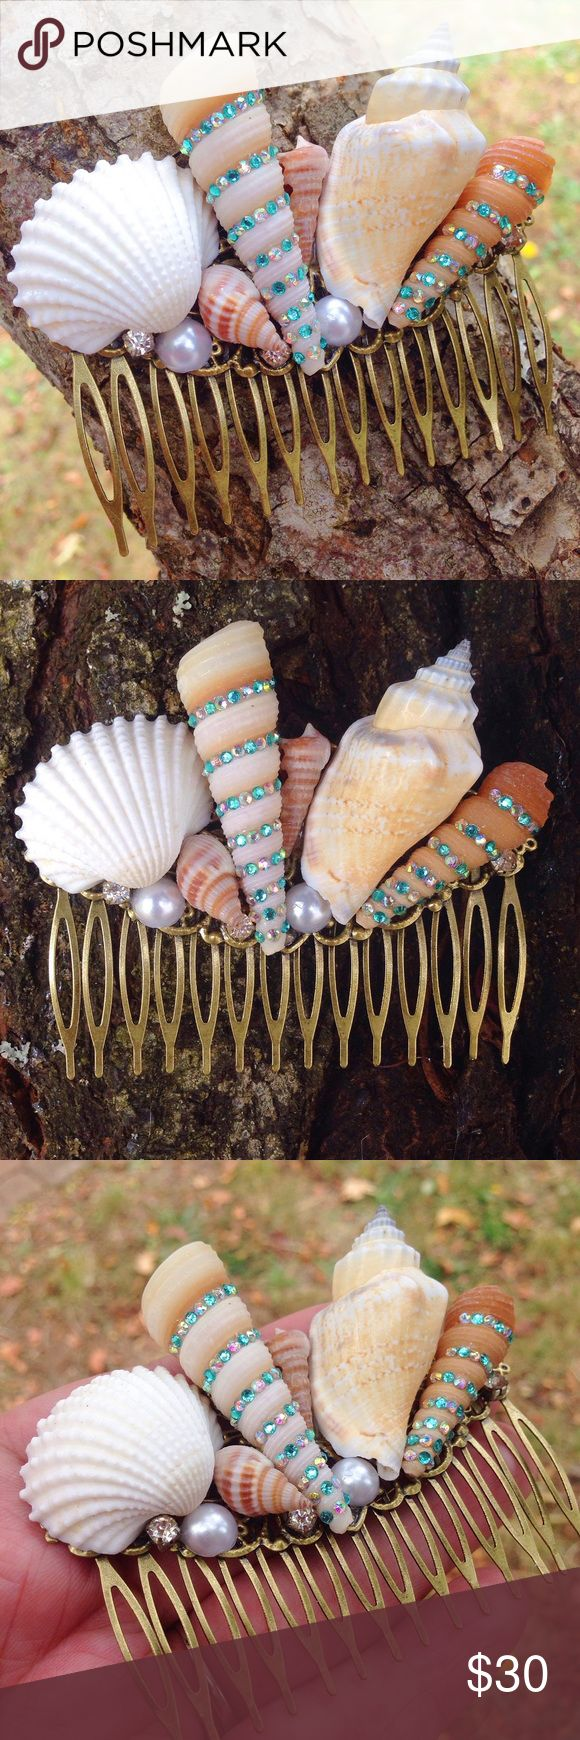 """Handmade seashell hair comb/mermaid/boho/gypsy An Abbie's Anchor Original-This hair comb is made from seashells from the Oregon Coast. Spiral shells are decorated with iridescent gems. You will find a few rhinestones & faux pearl beads hiding amongst the shells-Comb is made from brass filigree and measures 3 1/2"""" across X 2 3/4"""" tall. COMB IS MADE TO ORDER-please allow 3 days to ship. Each comb slightly differs as each shell is unique, I do my best to make it look almost identical to the one…"""